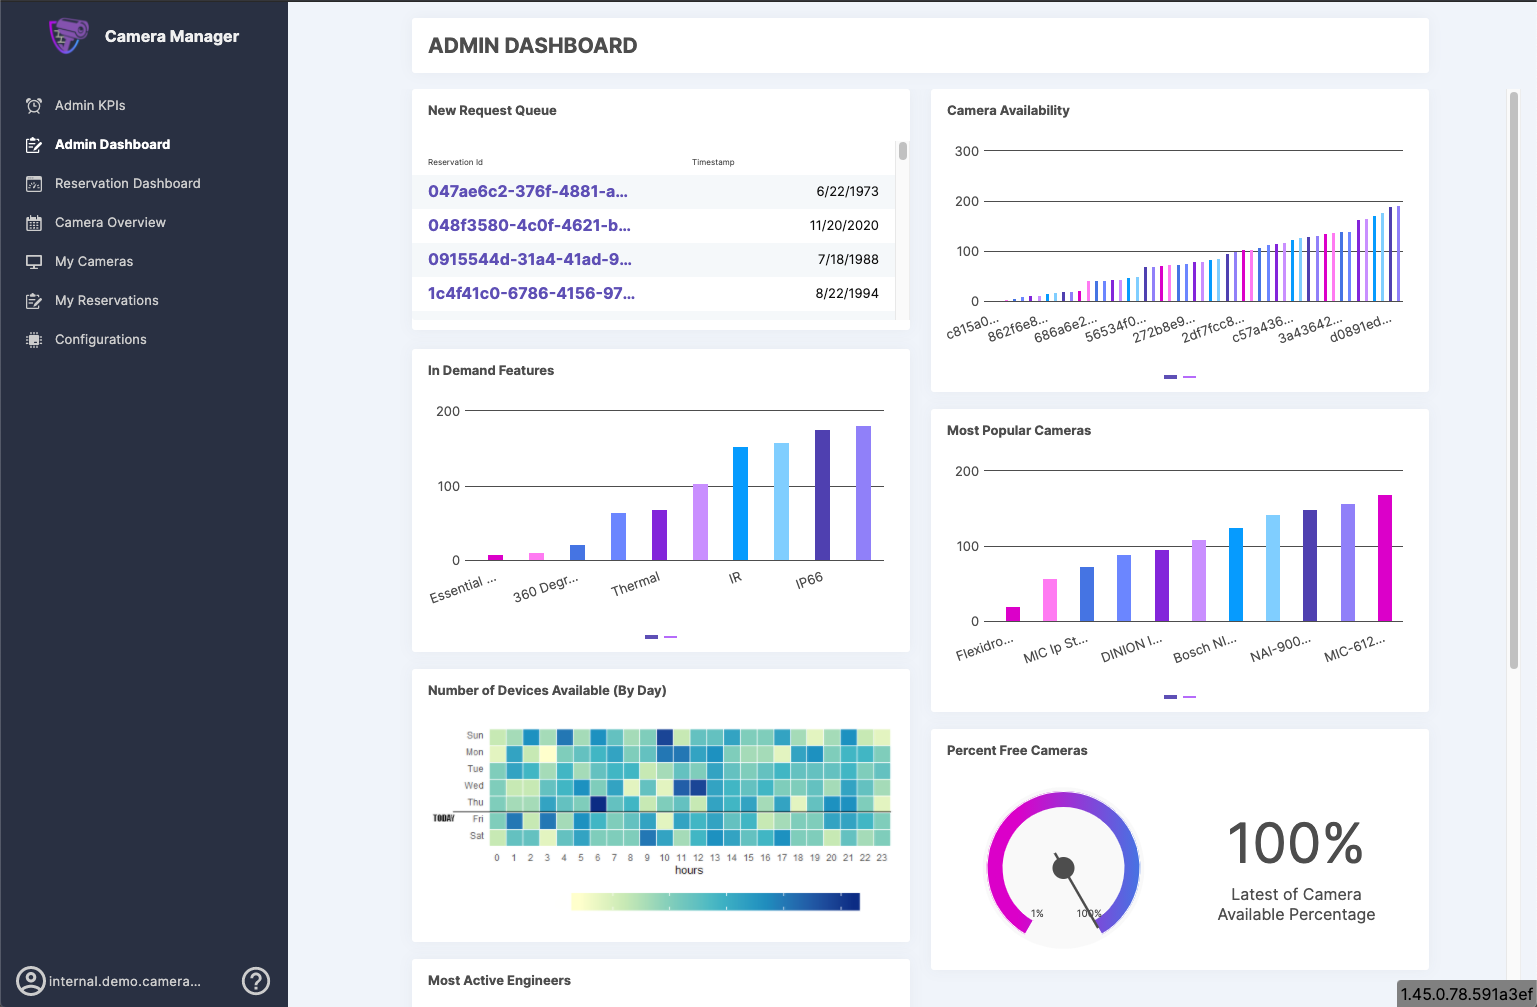 Connect all data sources and go beyond BI so customers can finally have all their data in one place. create dashboards and workflows to help their customers understand, gain insights and take action on that volume of info